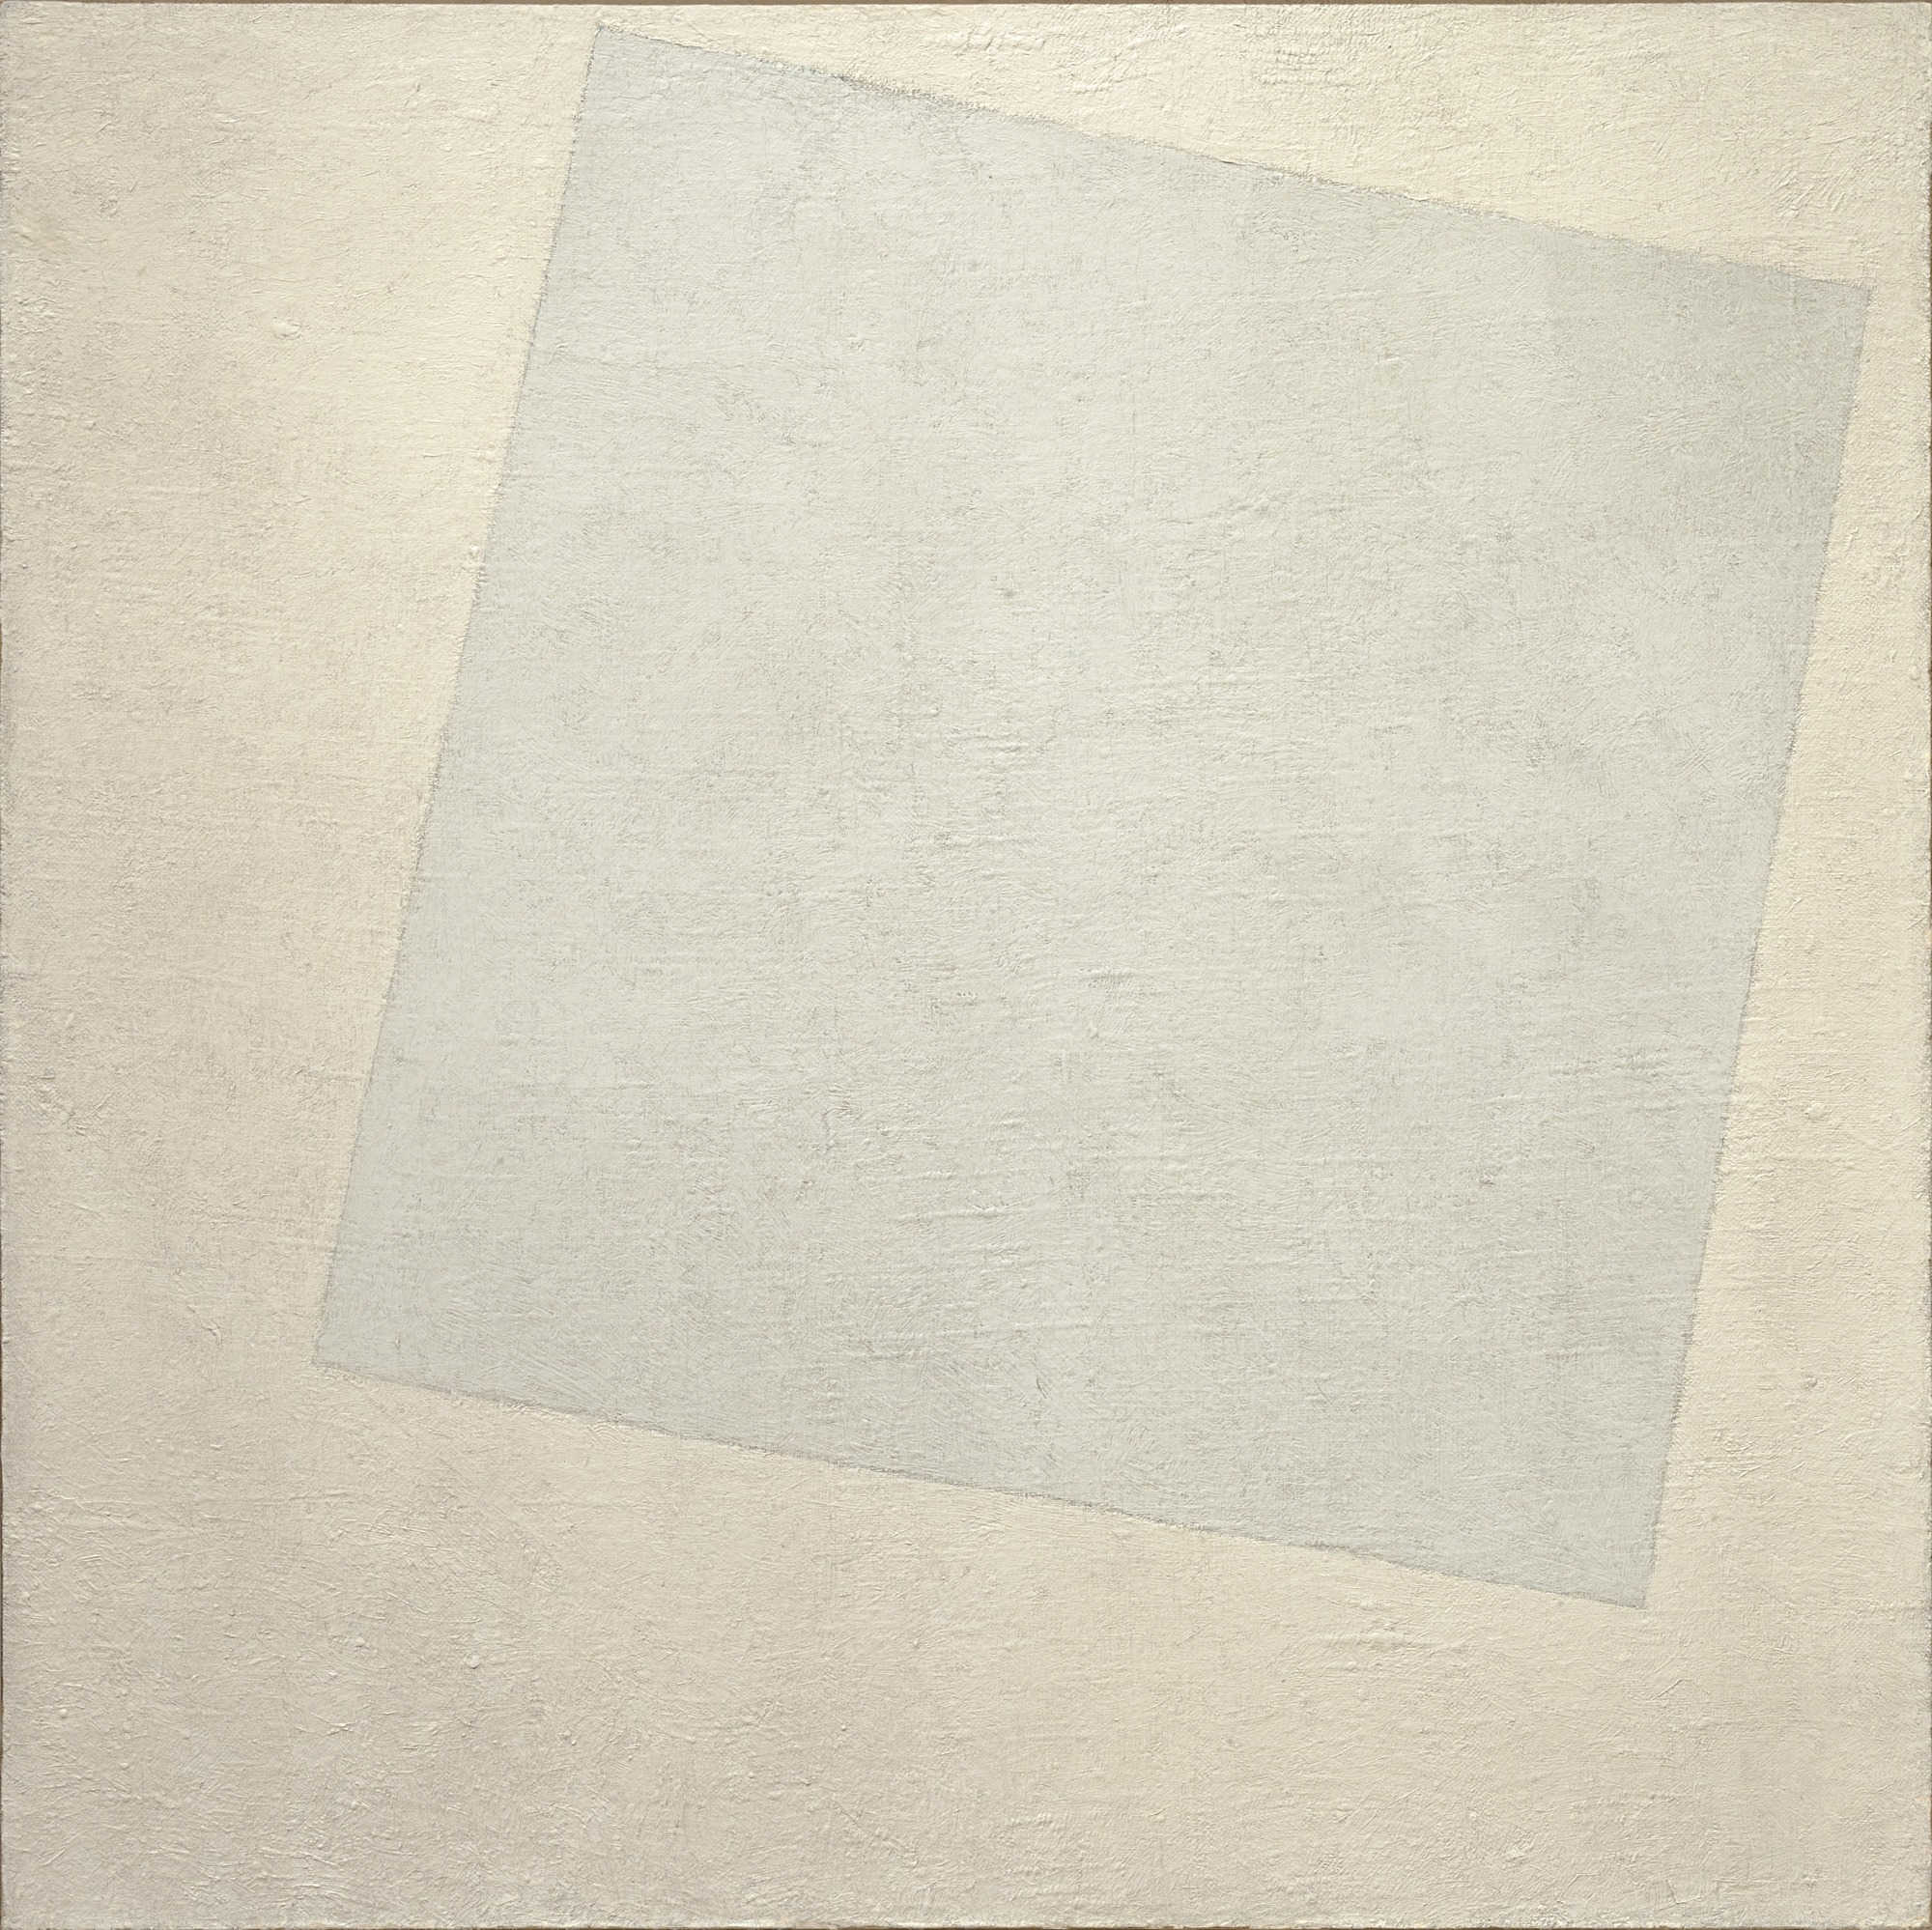 Résidus de lyrisme - Page 5 White_on_White_%28Malevich%2C_1918%29